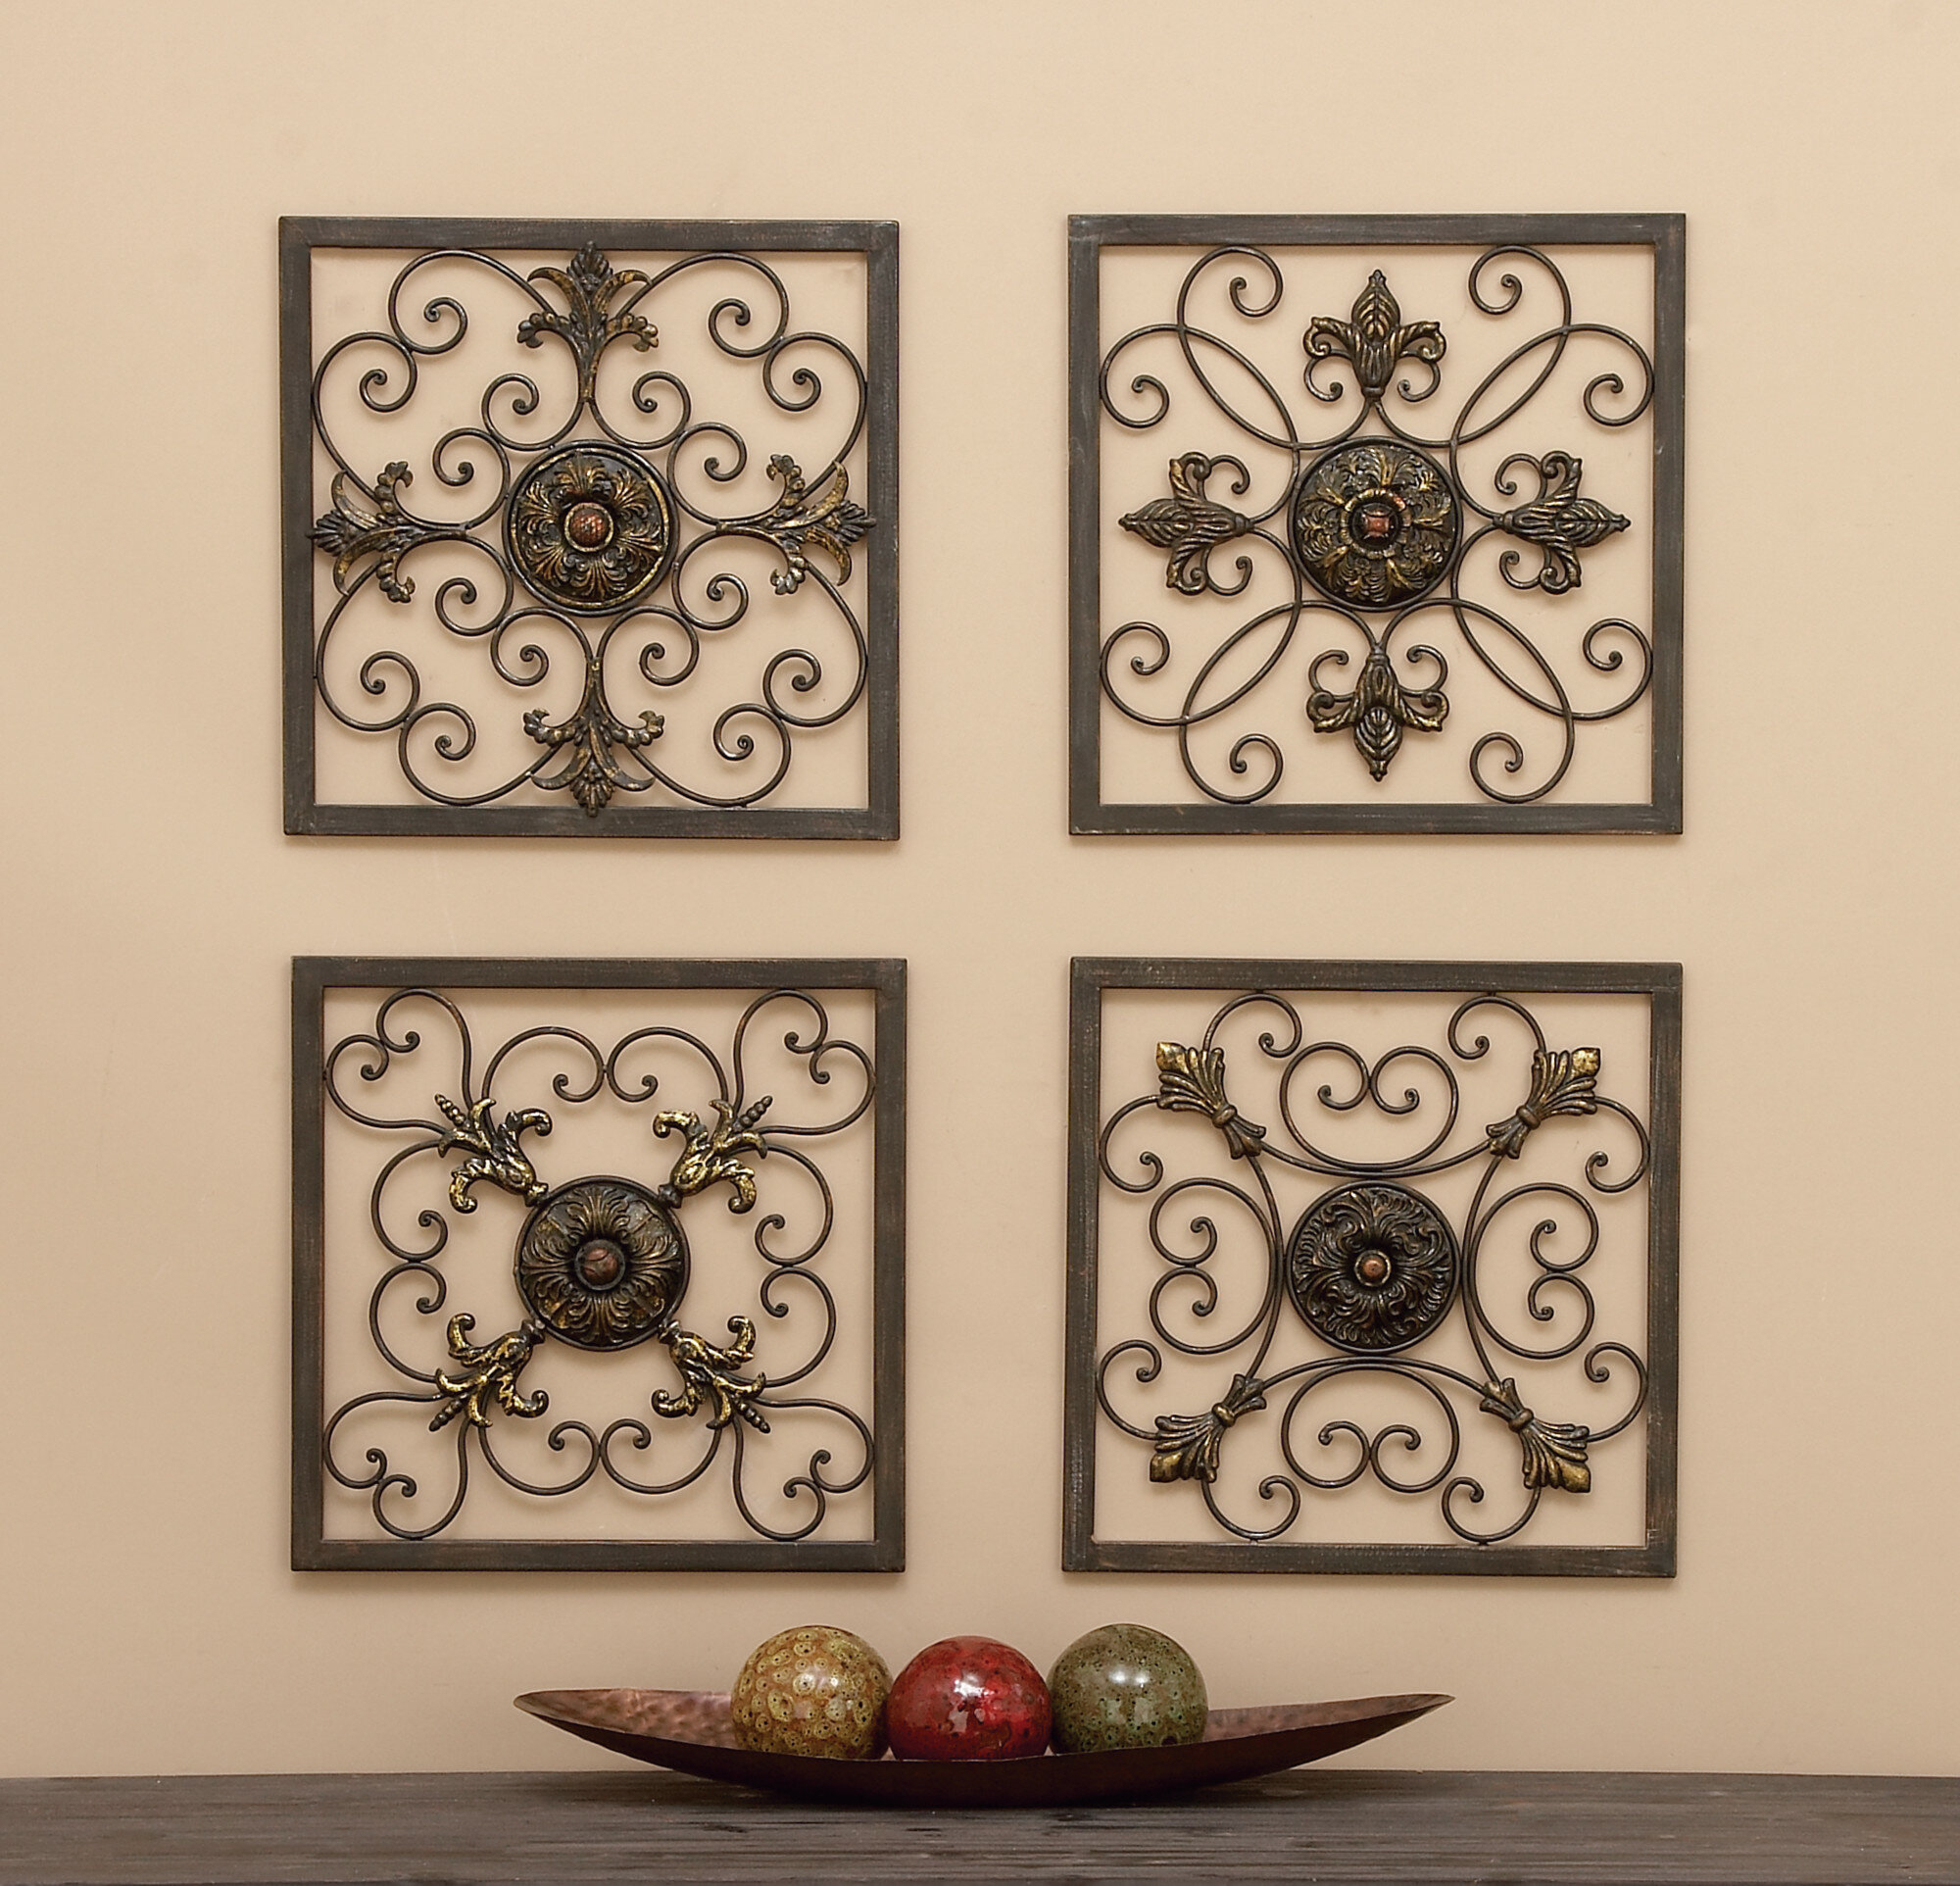 3 Piece Magnolia Brown Panel Wall Decor Sets Intended For Most Current Cole & Grey 4 Piece Metal Wall Plaque Décor Set & Reviews (View 3 of 20)